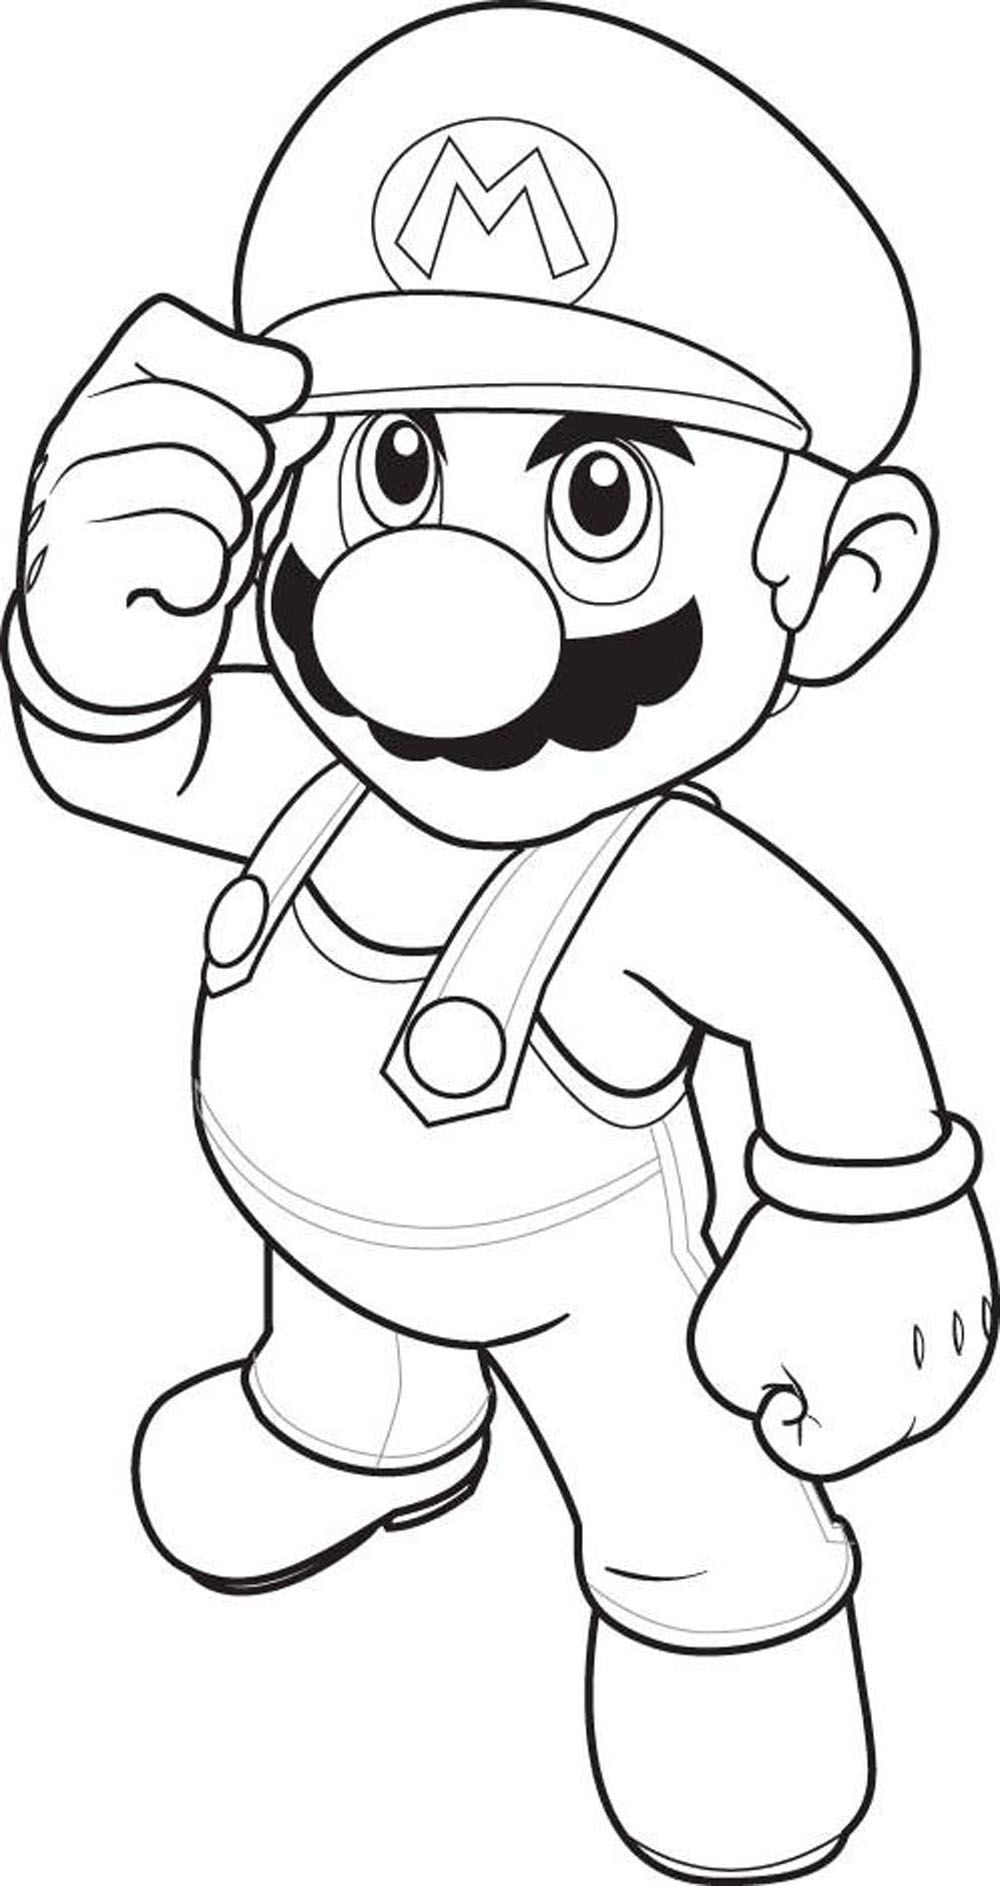 All mario character coloring pages coloring home for Mario color page